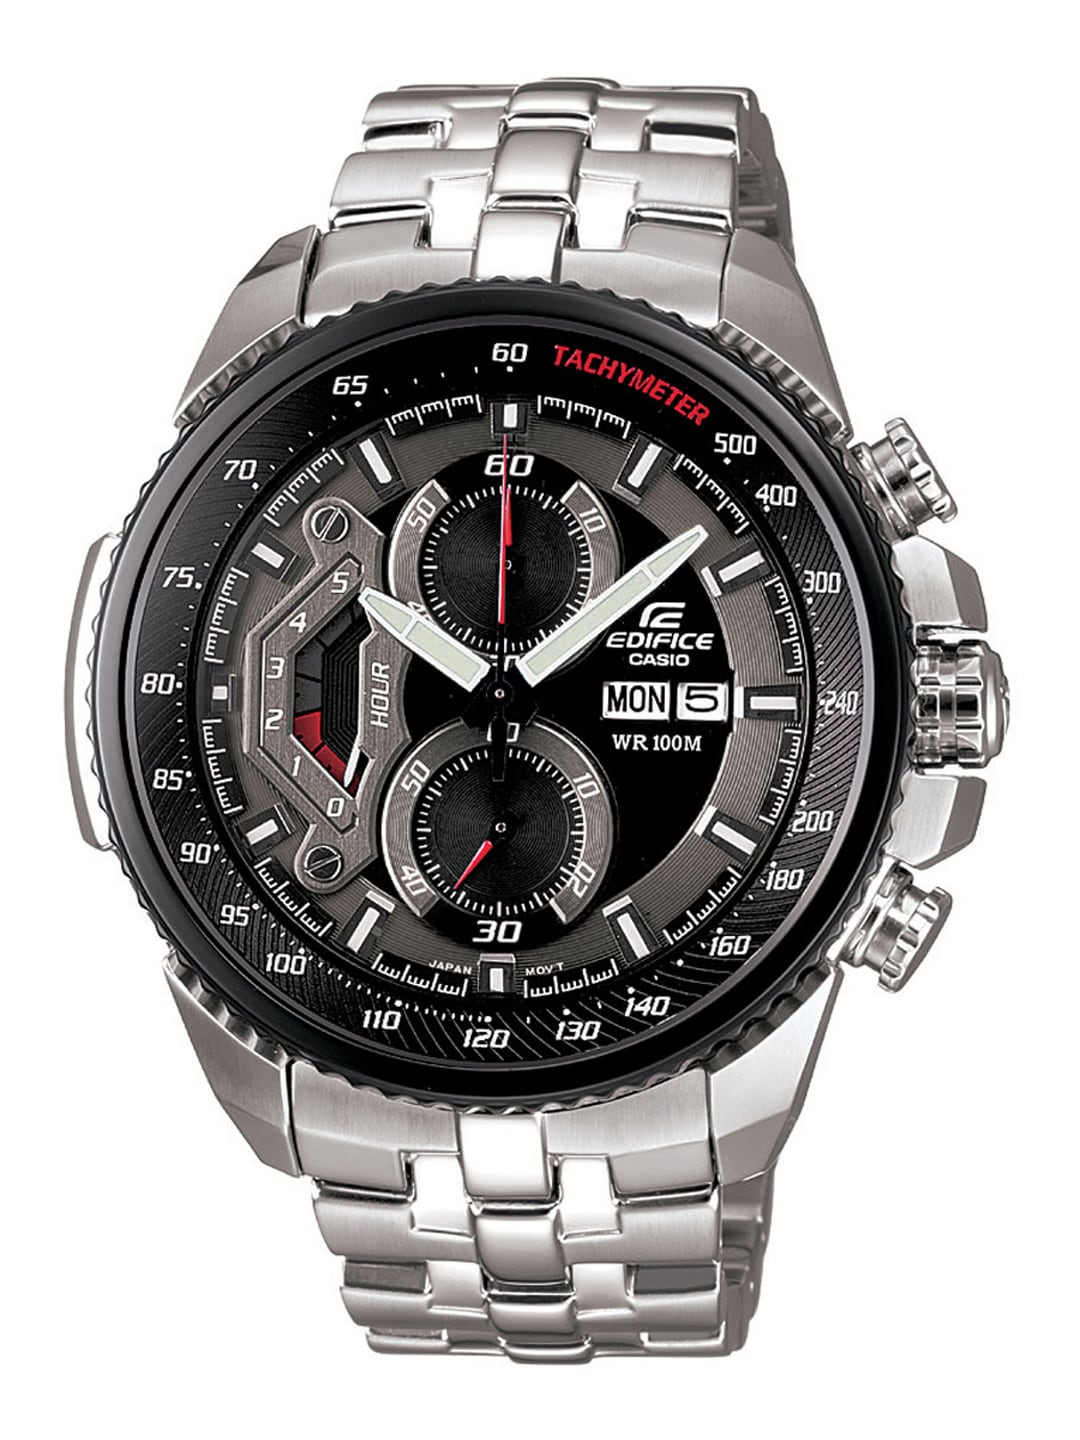 af69a2f2261 Casio Edifice Wr 100m Watches - Buy Casio Edifice Wr 100m Watches online in  India